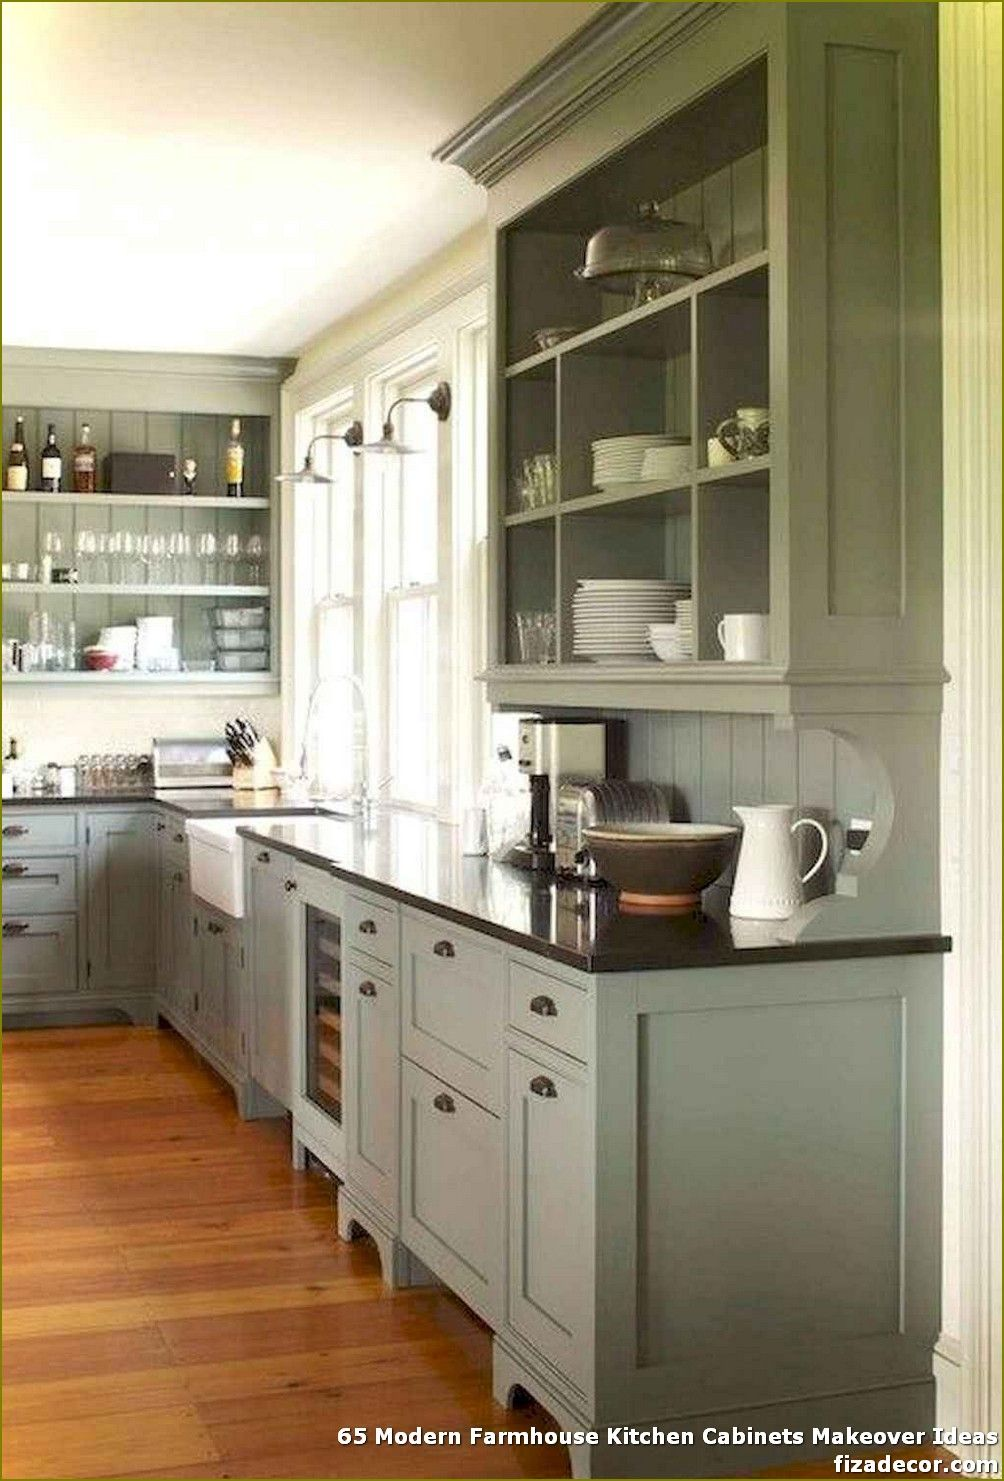 ✓ 65 Modern Farmhouse Kitchen Cabinets Makeover IdeasBest Home Decorating Ideas | fizadecor.com Page 54 #farmhousekitchendecor